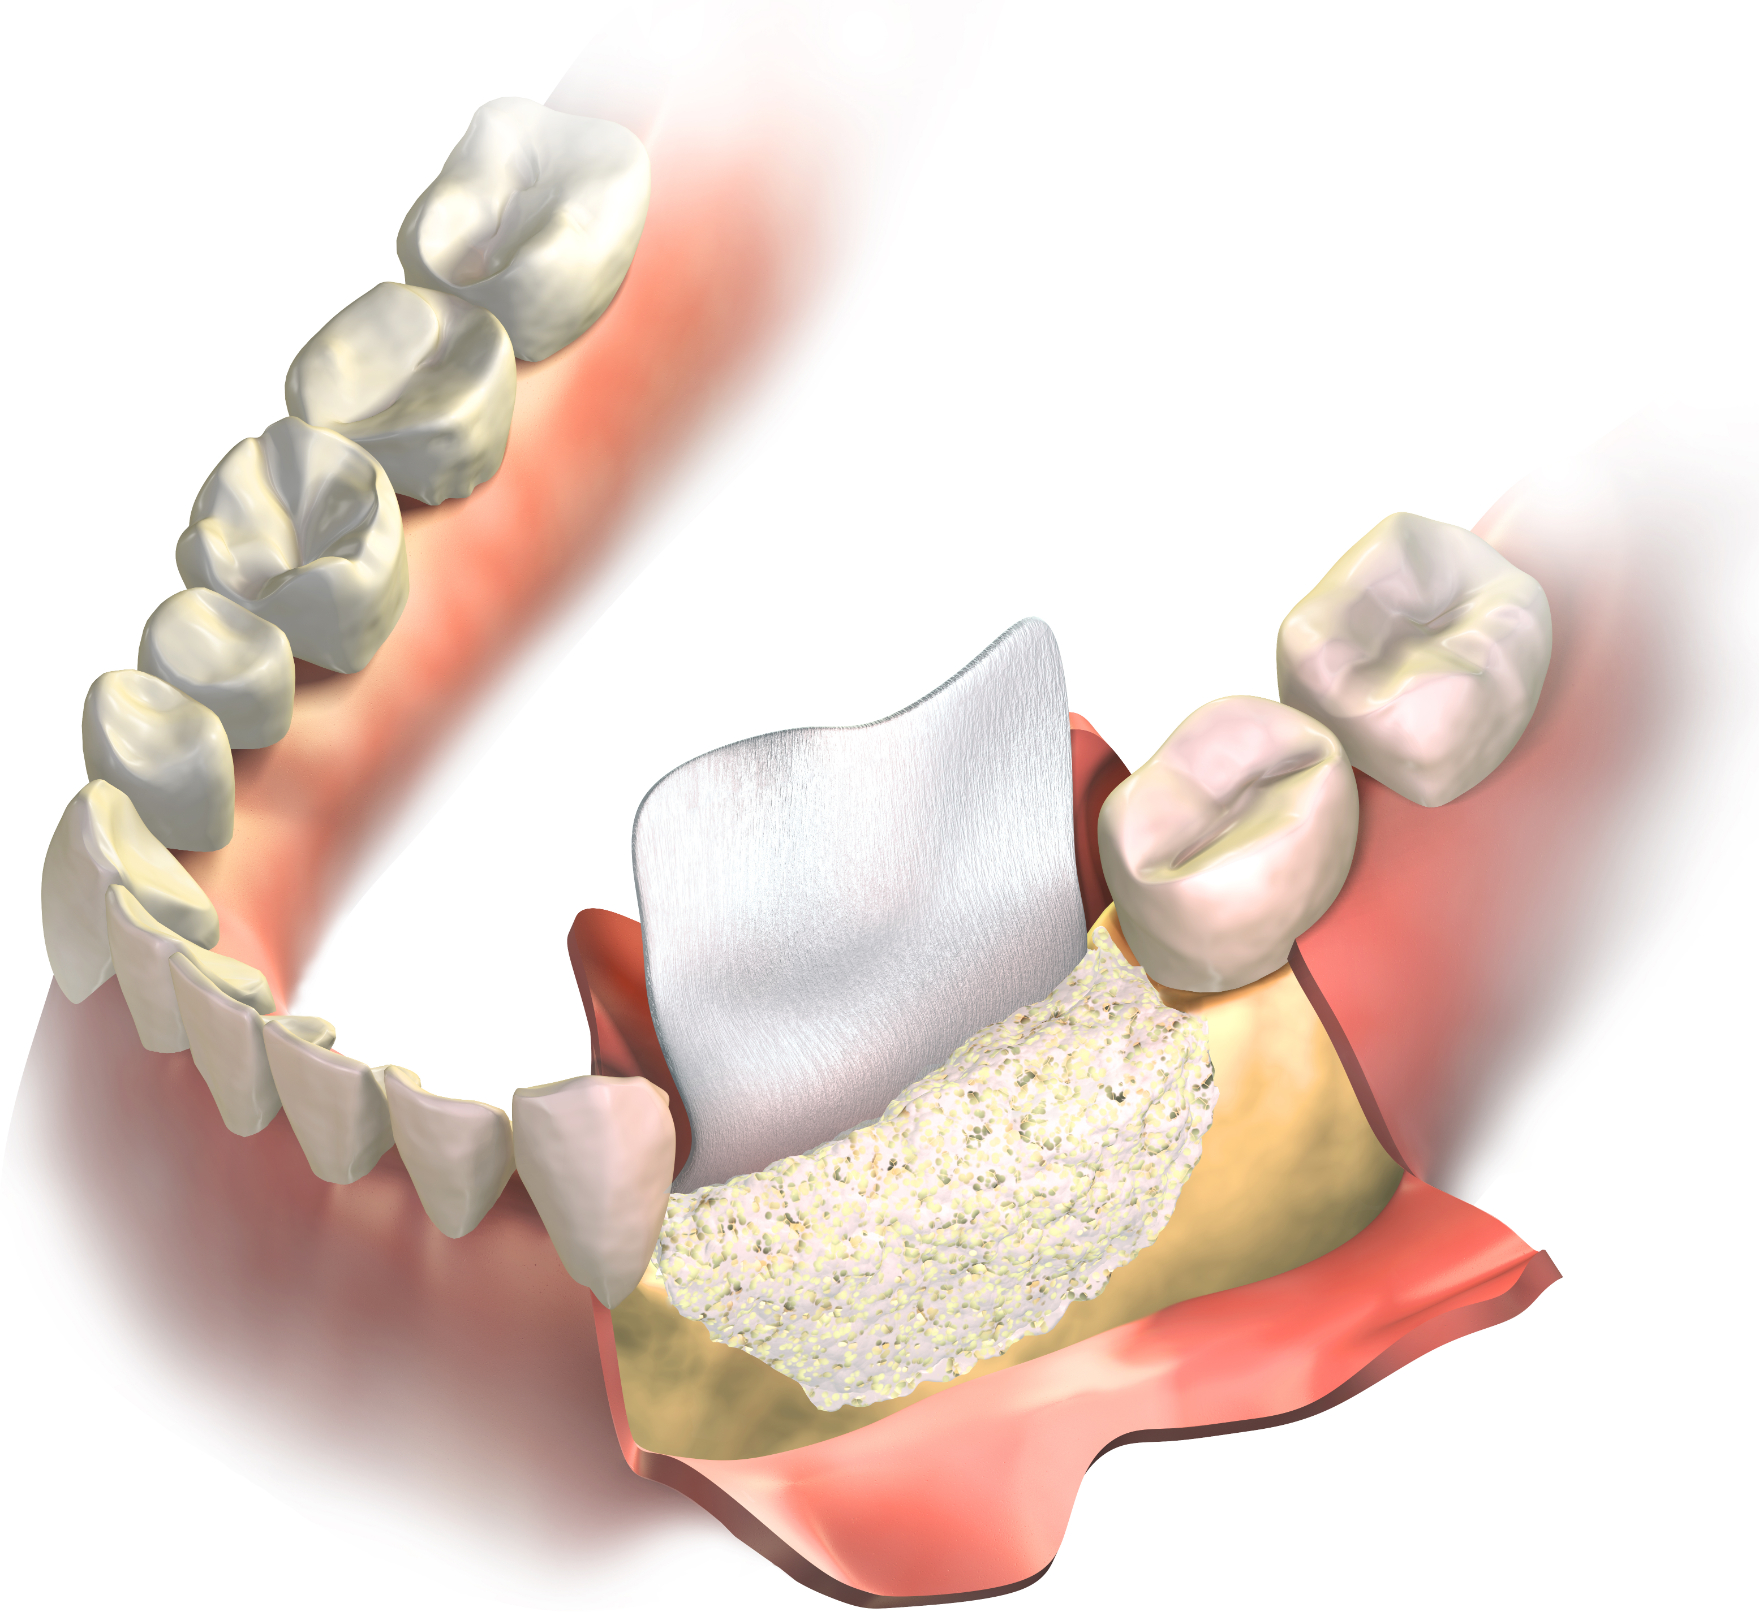 Regenerative collagen membrane placed between the gums and bone graft